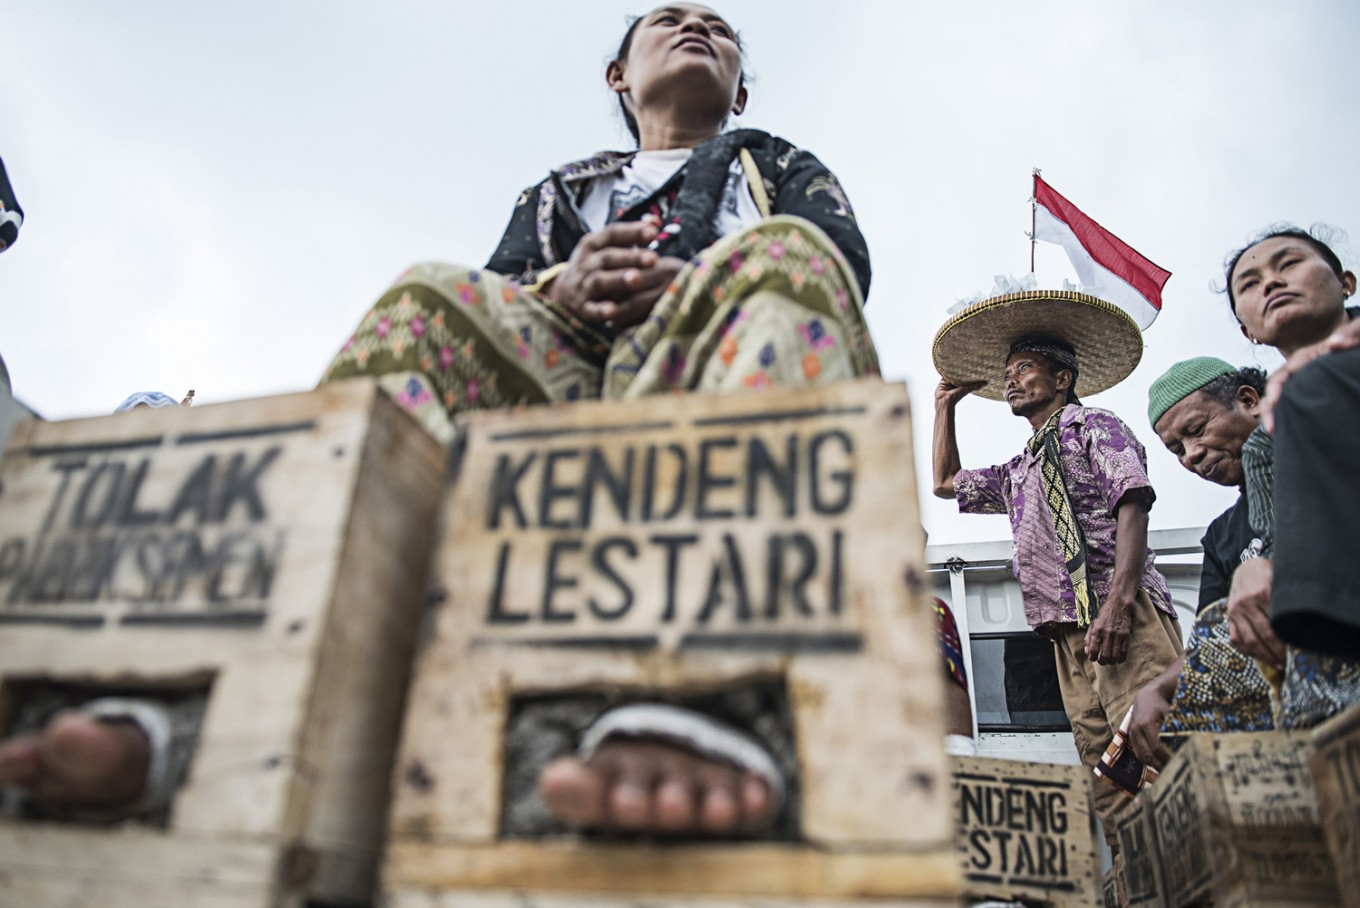 Kendeng farmers refuse to halt protests against cement factory